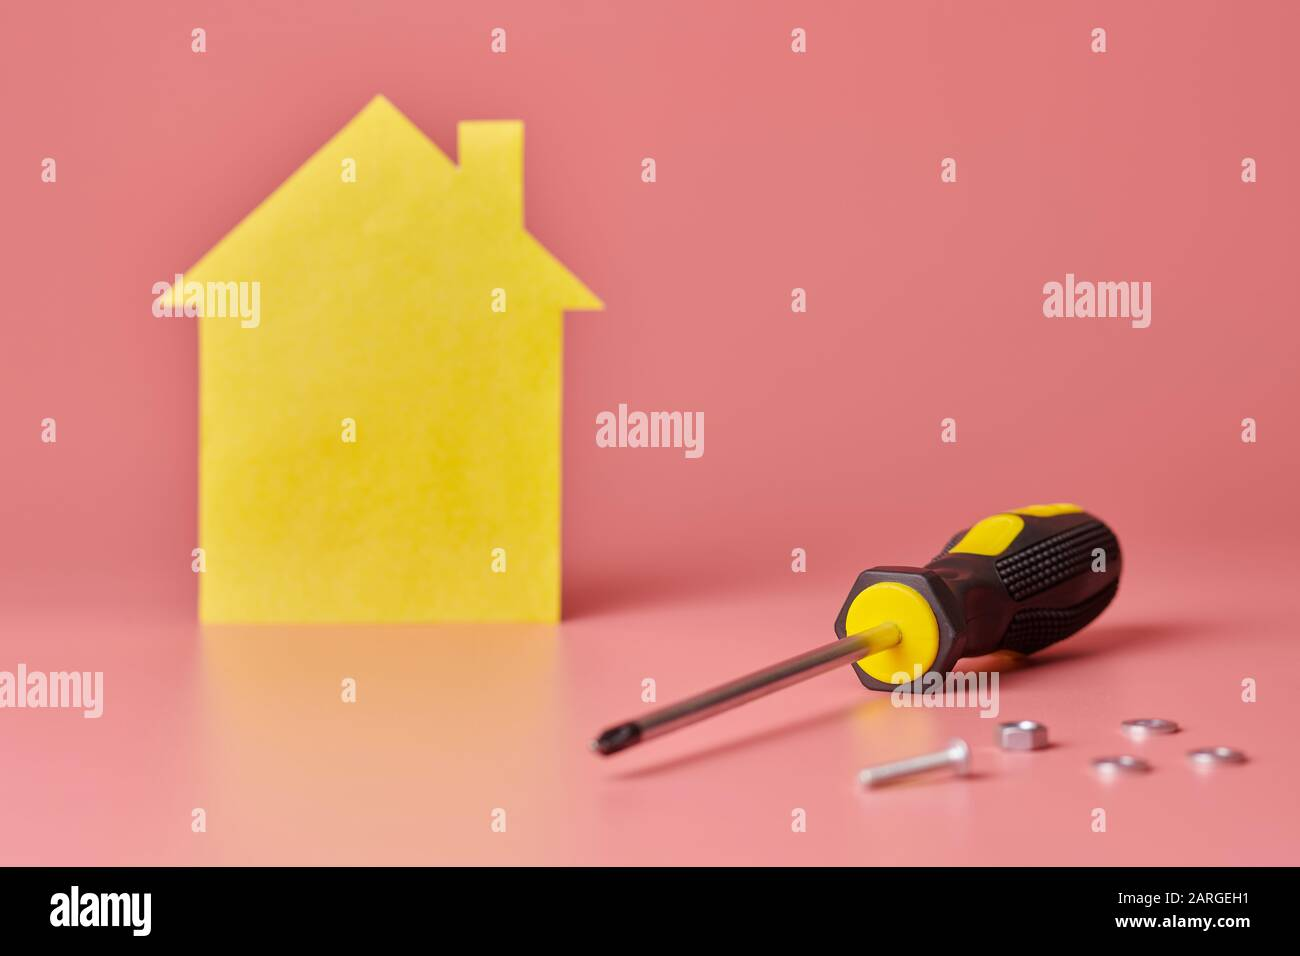 House renovation concept. Home repair and redecorated. Screws and yellow house shaped figure on pink background. Stock Photo